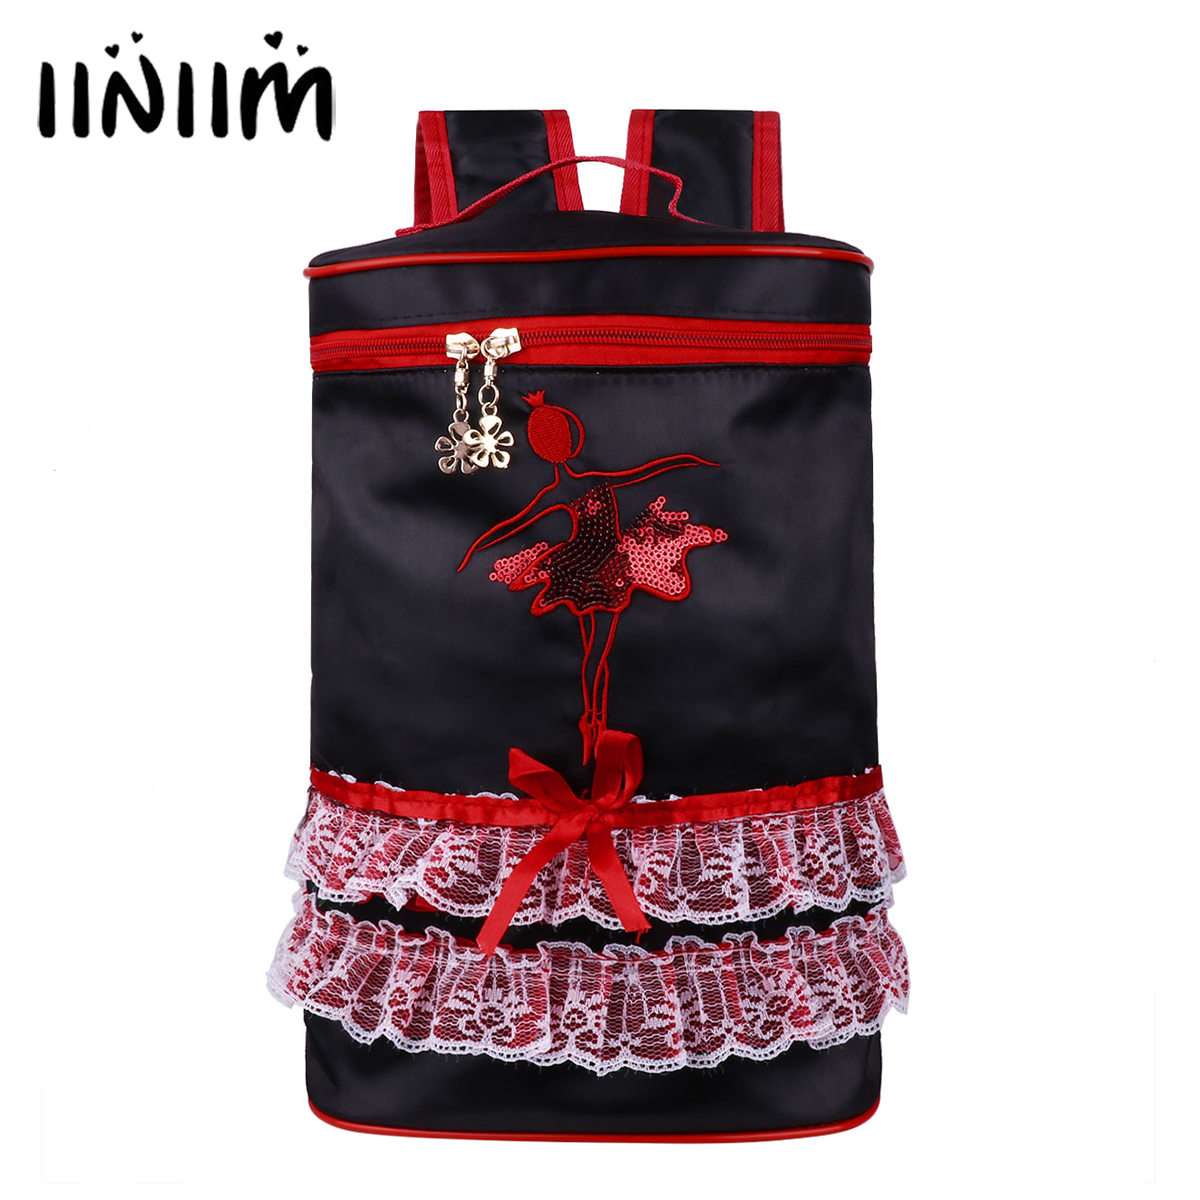 Pretty Girls Dancing Bag Adorable Ballet Dance Bag Kids Embroidered Princess Ballerina Costumes Tiered Ruffled Tutu Bag Backpack